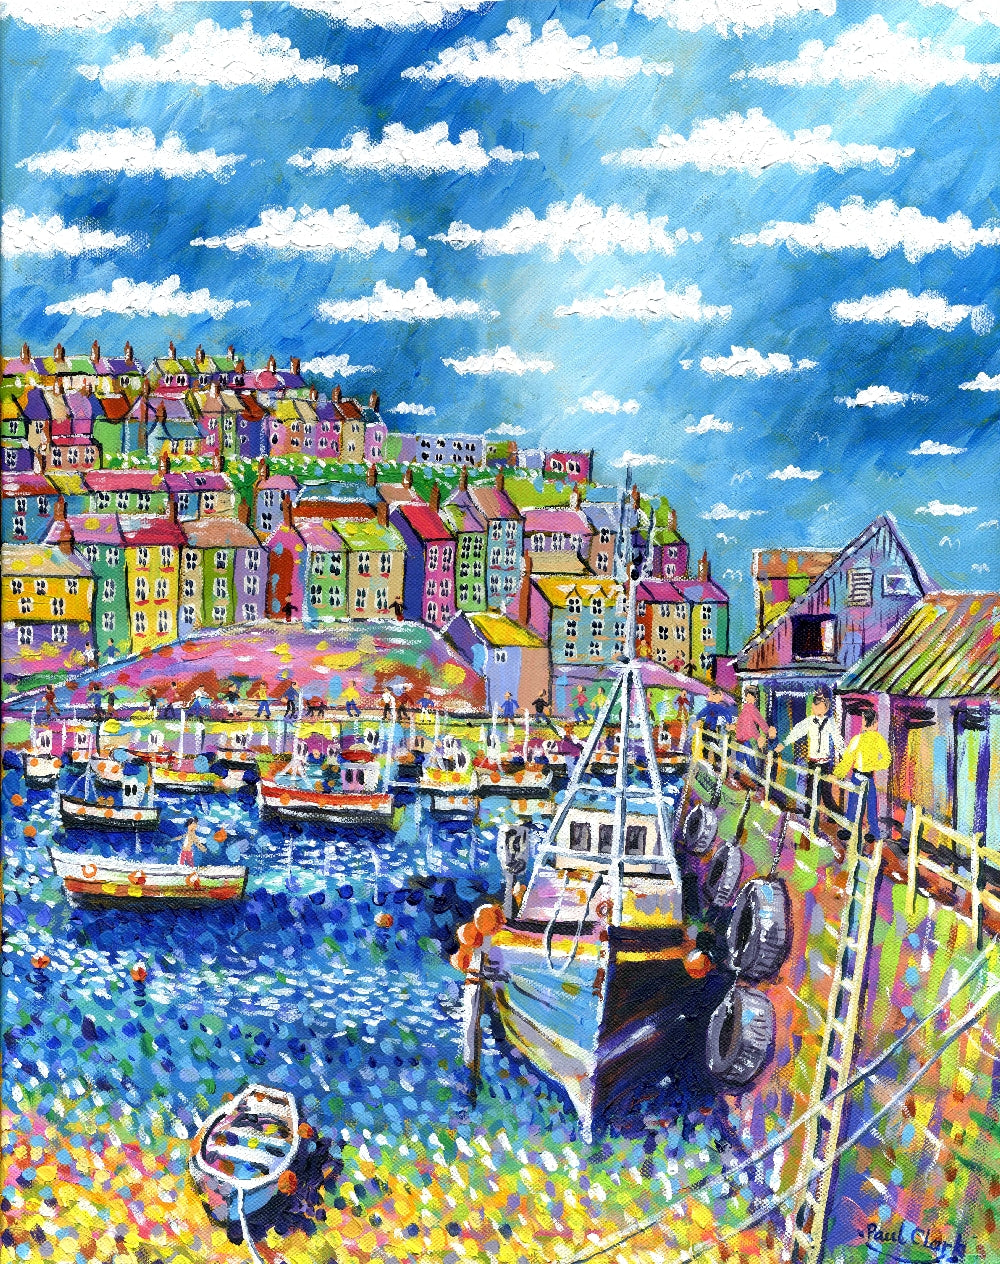 Blue Boat, Mevagissey, print by Paul Clark